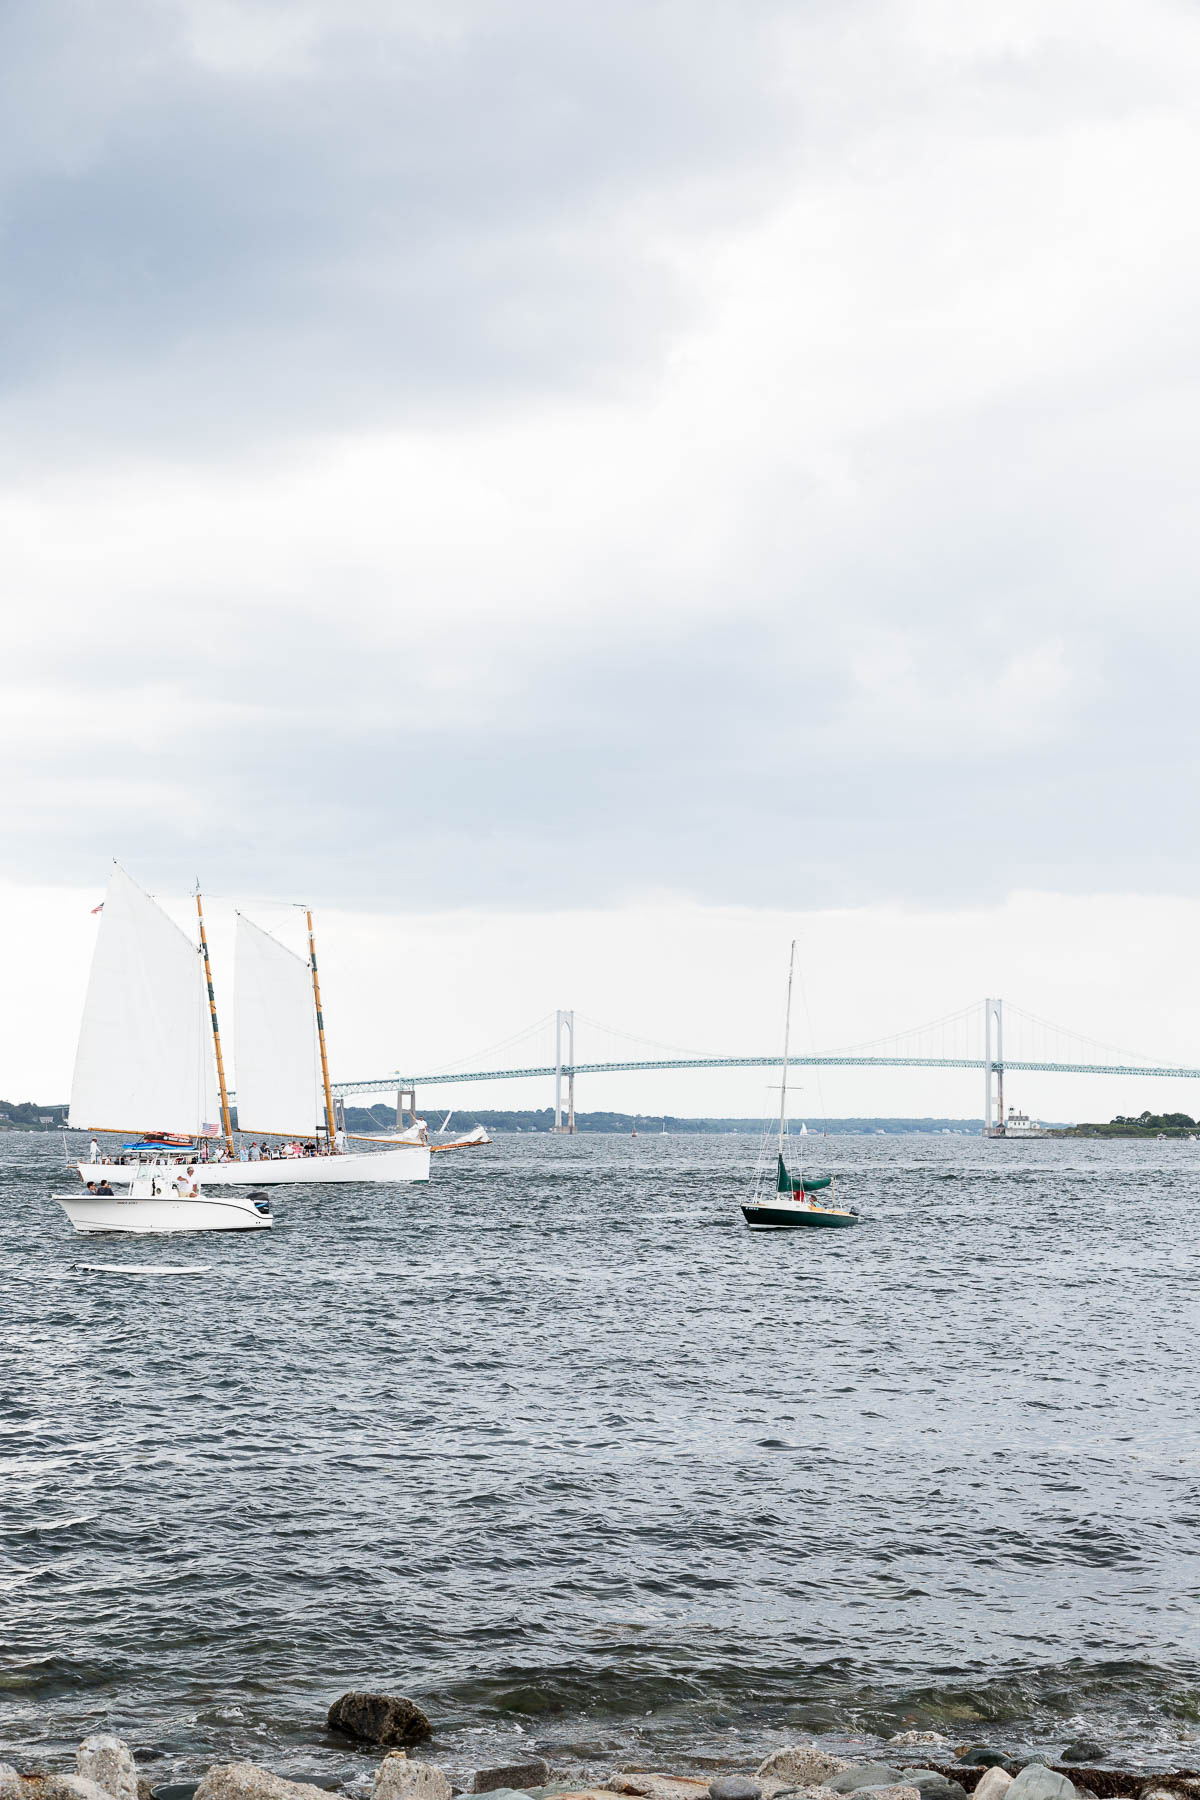 newport, rhode island // a thousand threads